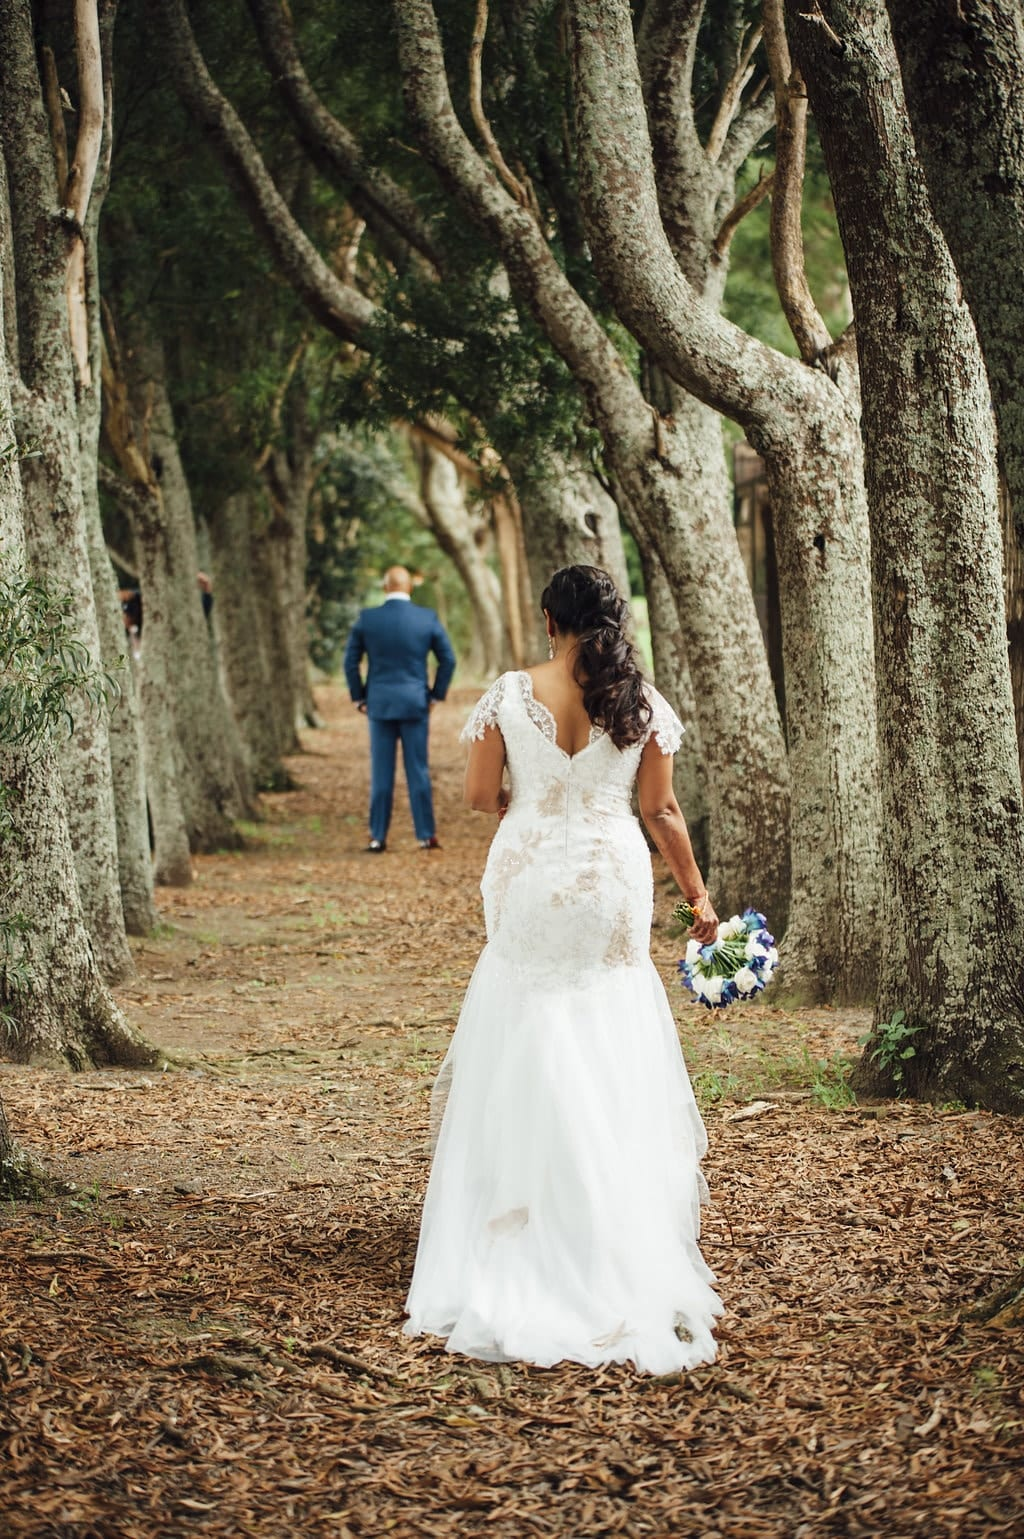 Real Weddings | Vinka Design | Real Brides Wearing Vinka Gowns | Shalini and Jayesh walking away through wooded path showing beautiful back of bespoke Vinka gown